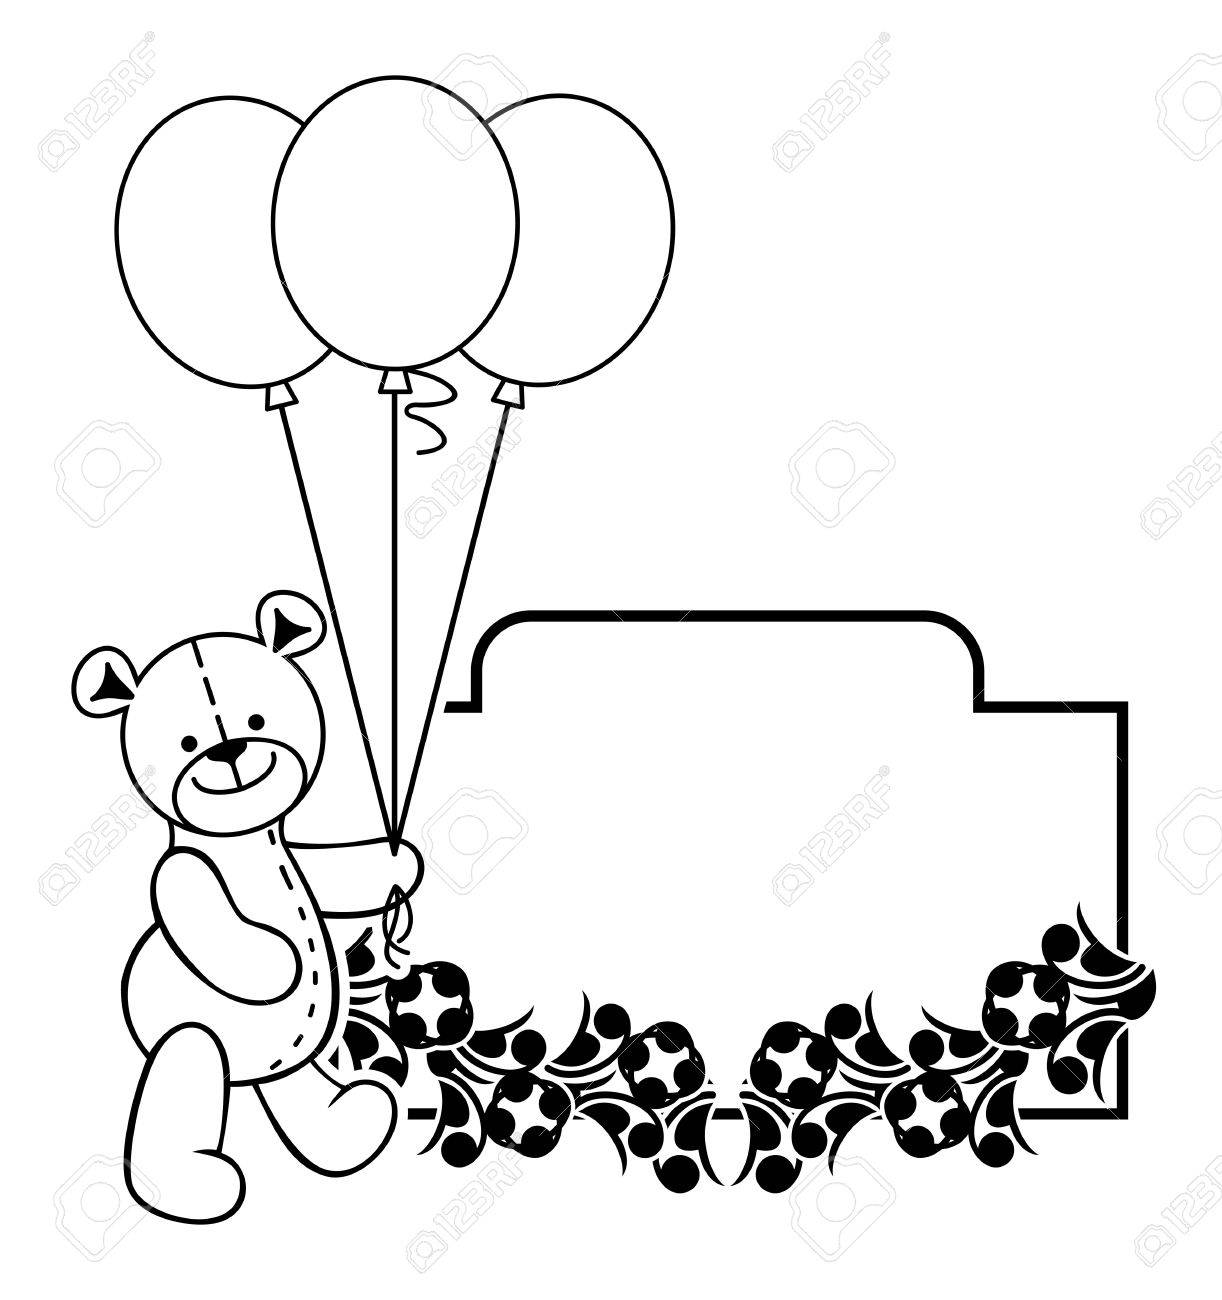 black and white frame with teddy bear plush toy vector clip rh 123rf com Tree Clip Art Black and White Tree Clip Art Black and White